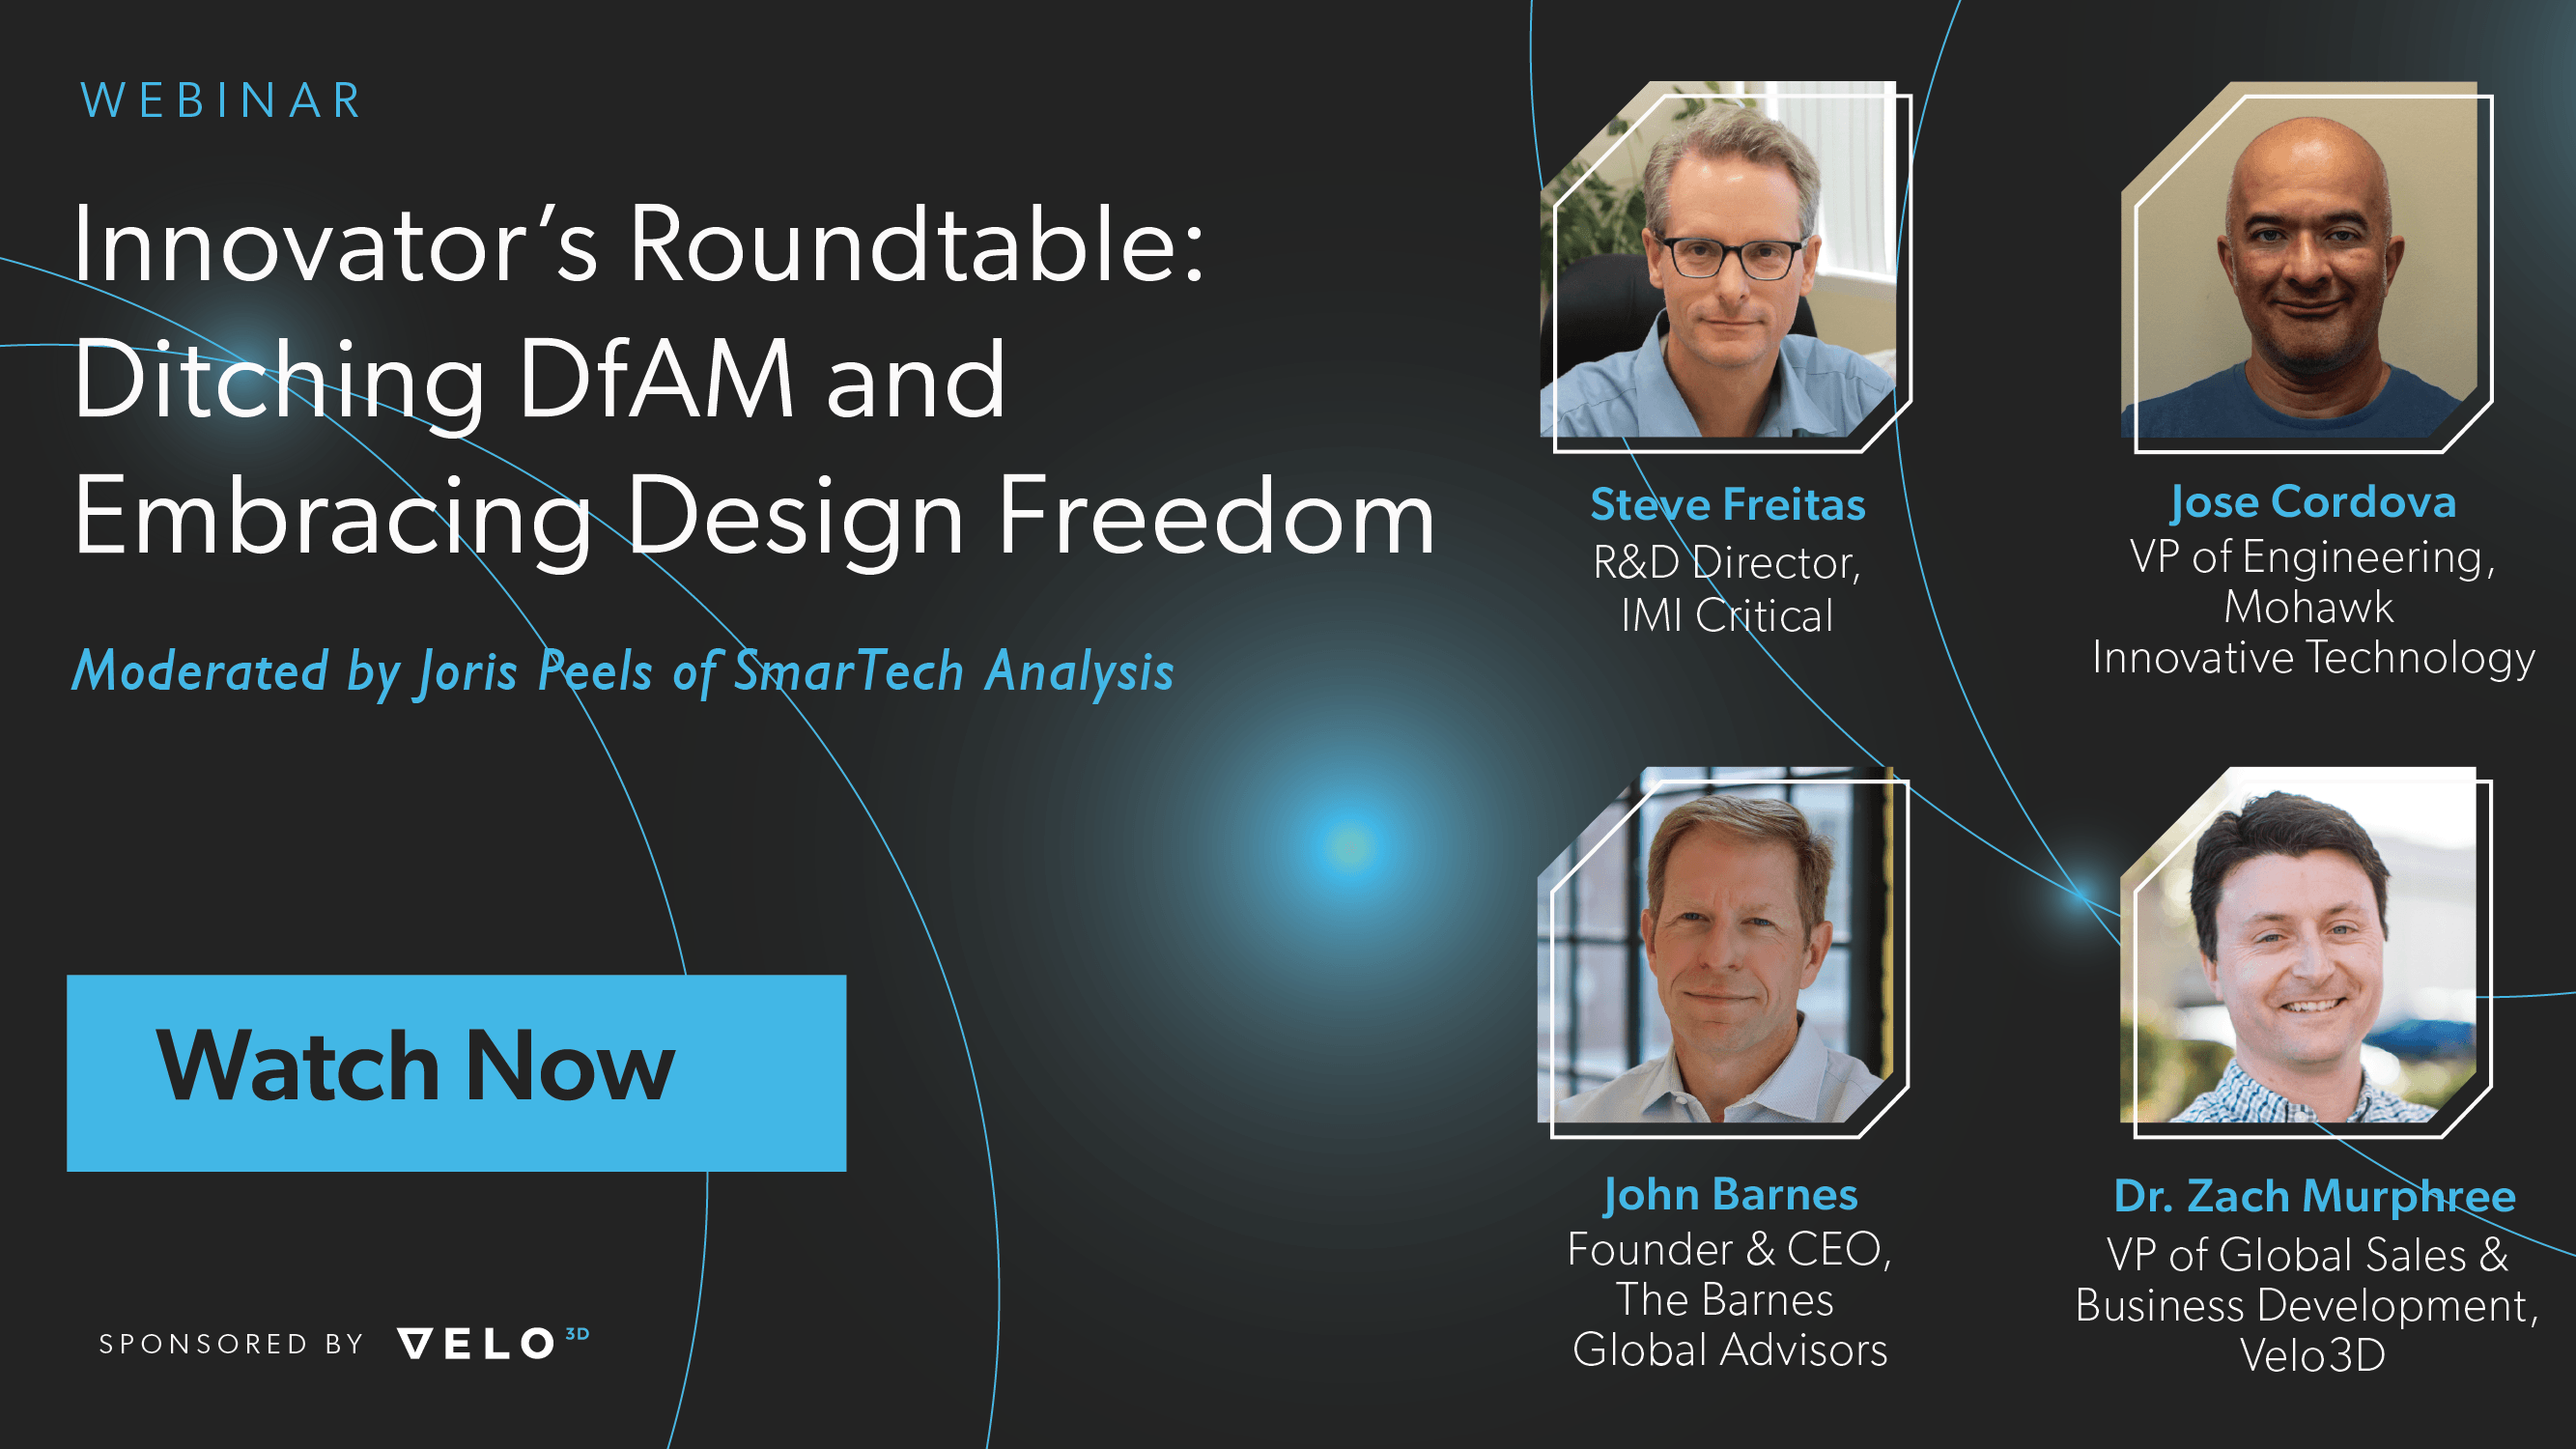 Innovator's Roundtable: Ditching DfAM and Embracing Design Freedom